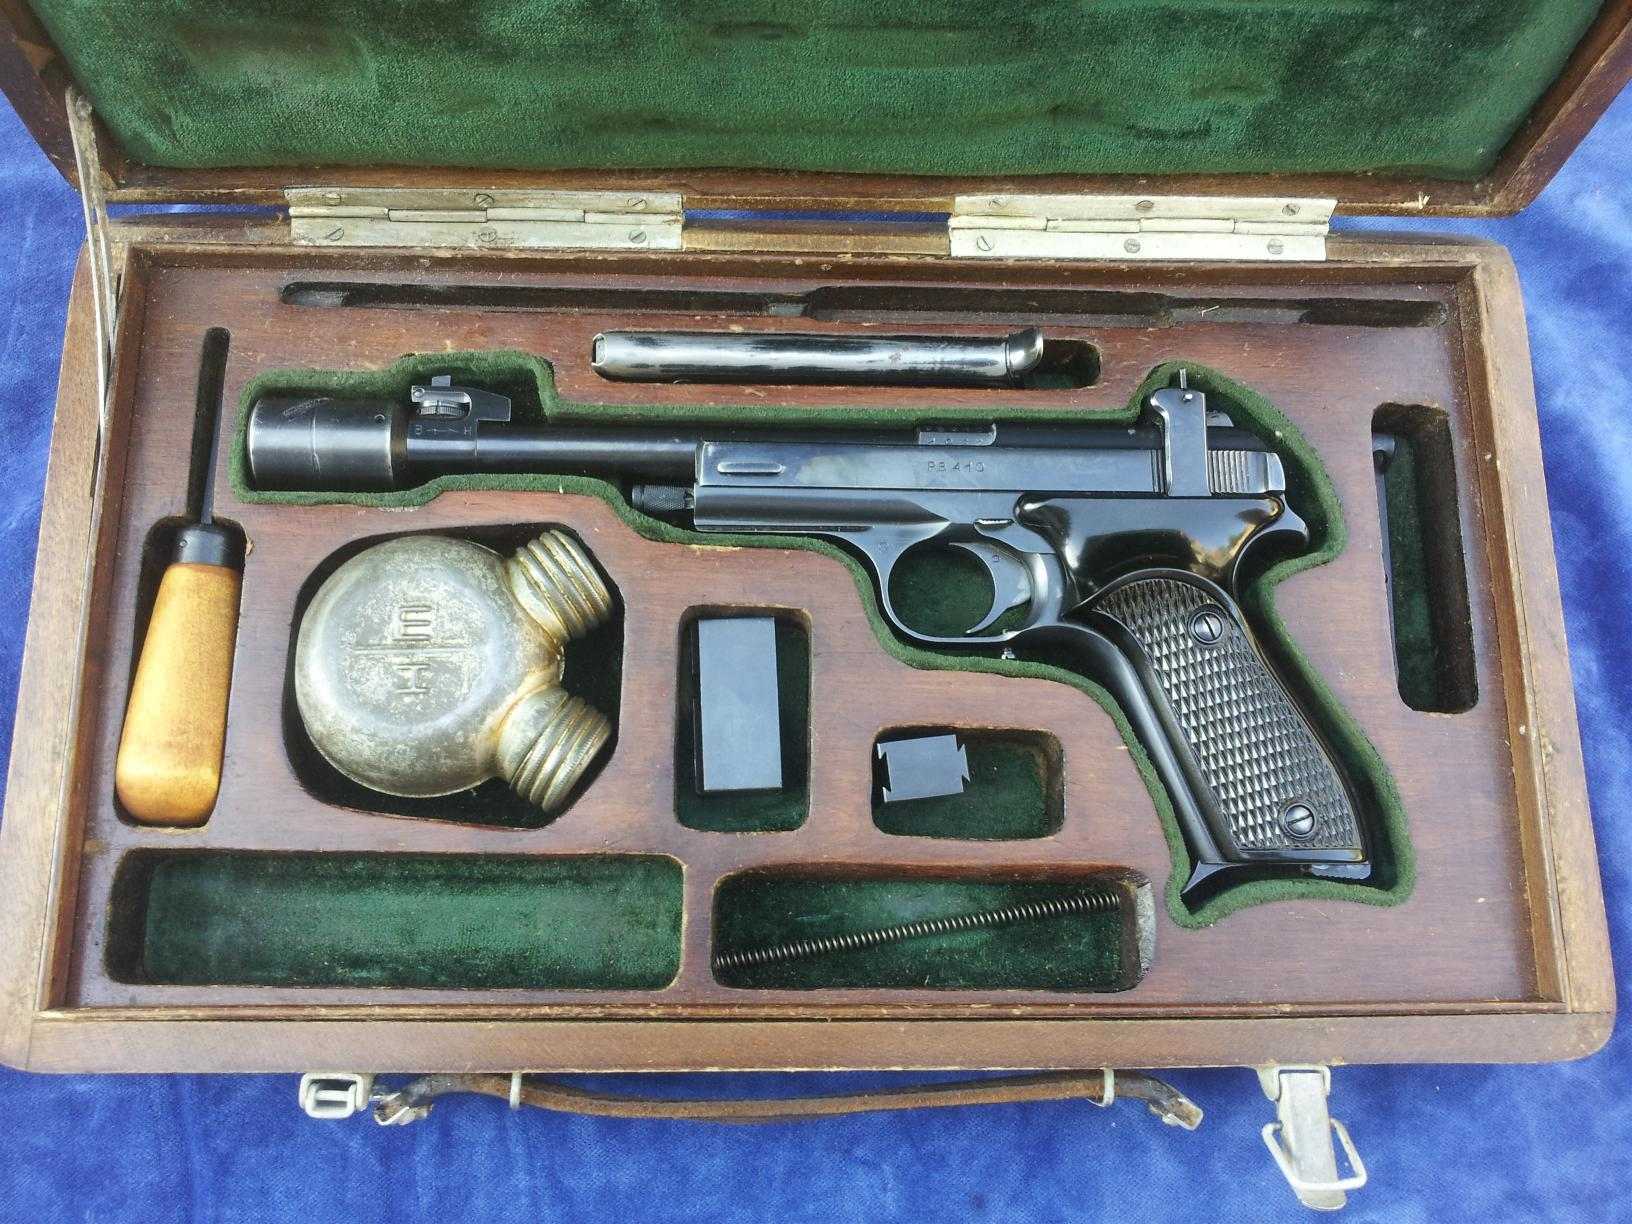 The Russian target pistols such as the Margolin MCM were usually presented in a fitted wooden box complete with accessories. (Picture courtesy wapenhandelwagemakers.nl).